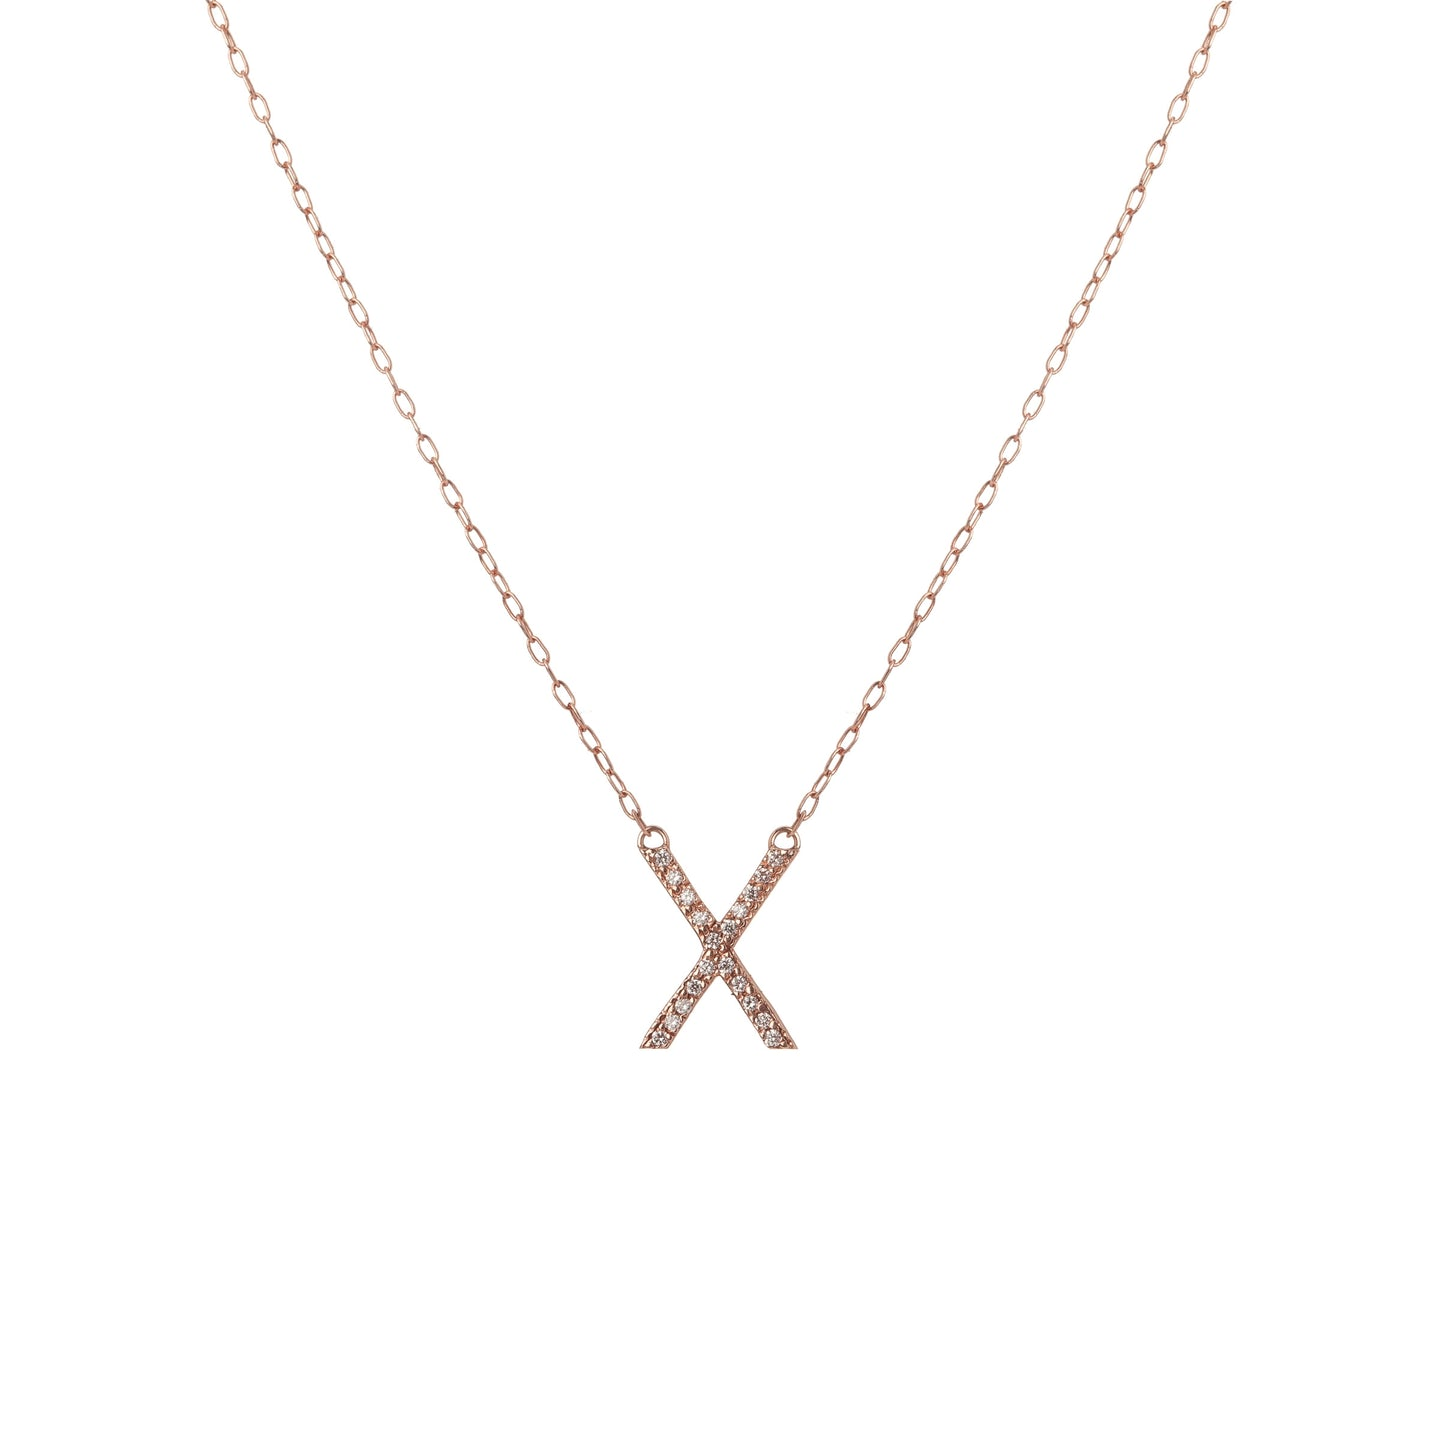 Minimal Block Letter Pendant Necklace with Pave White Diamonds